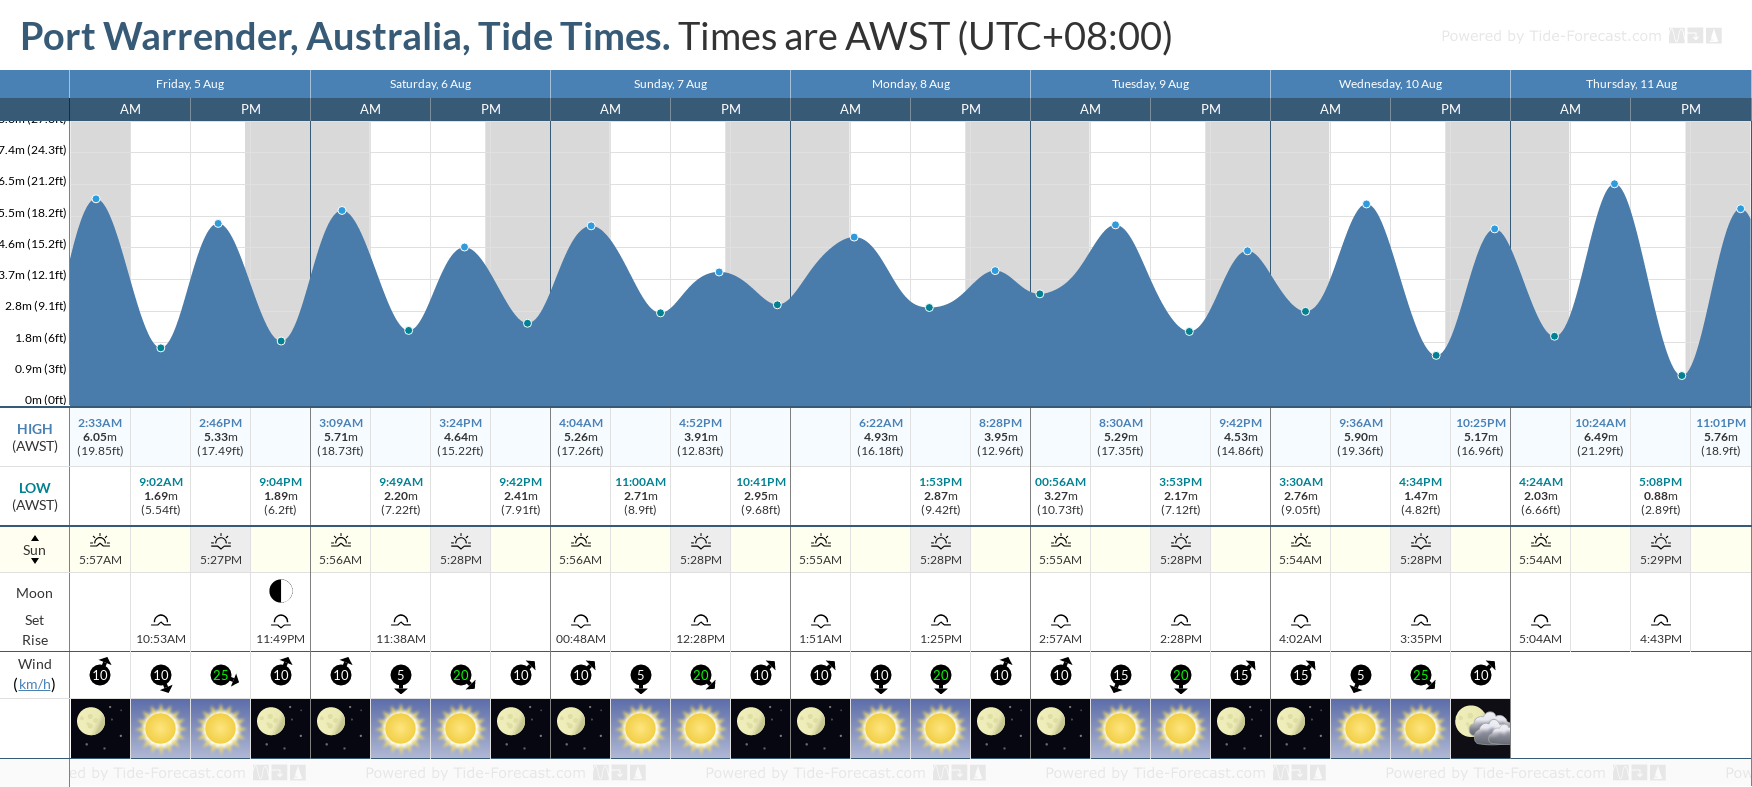 Port Warrender, Australia Tide Chart including high and low tide tide times for the next 7 days